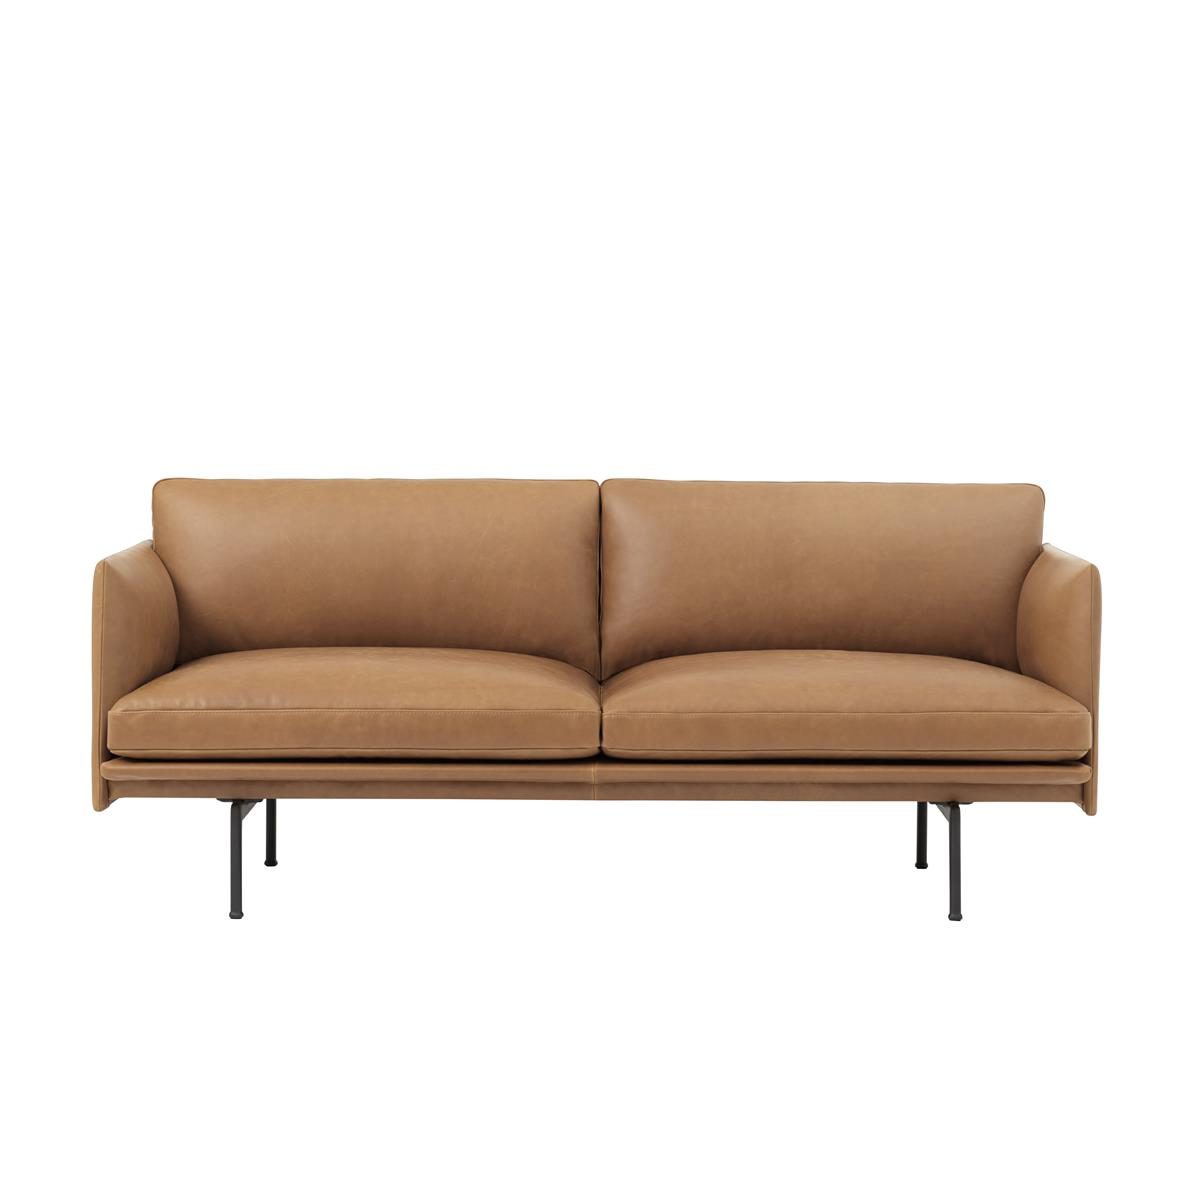 Outline Sofa 2 Seater - Cognac Silk Leather & Black